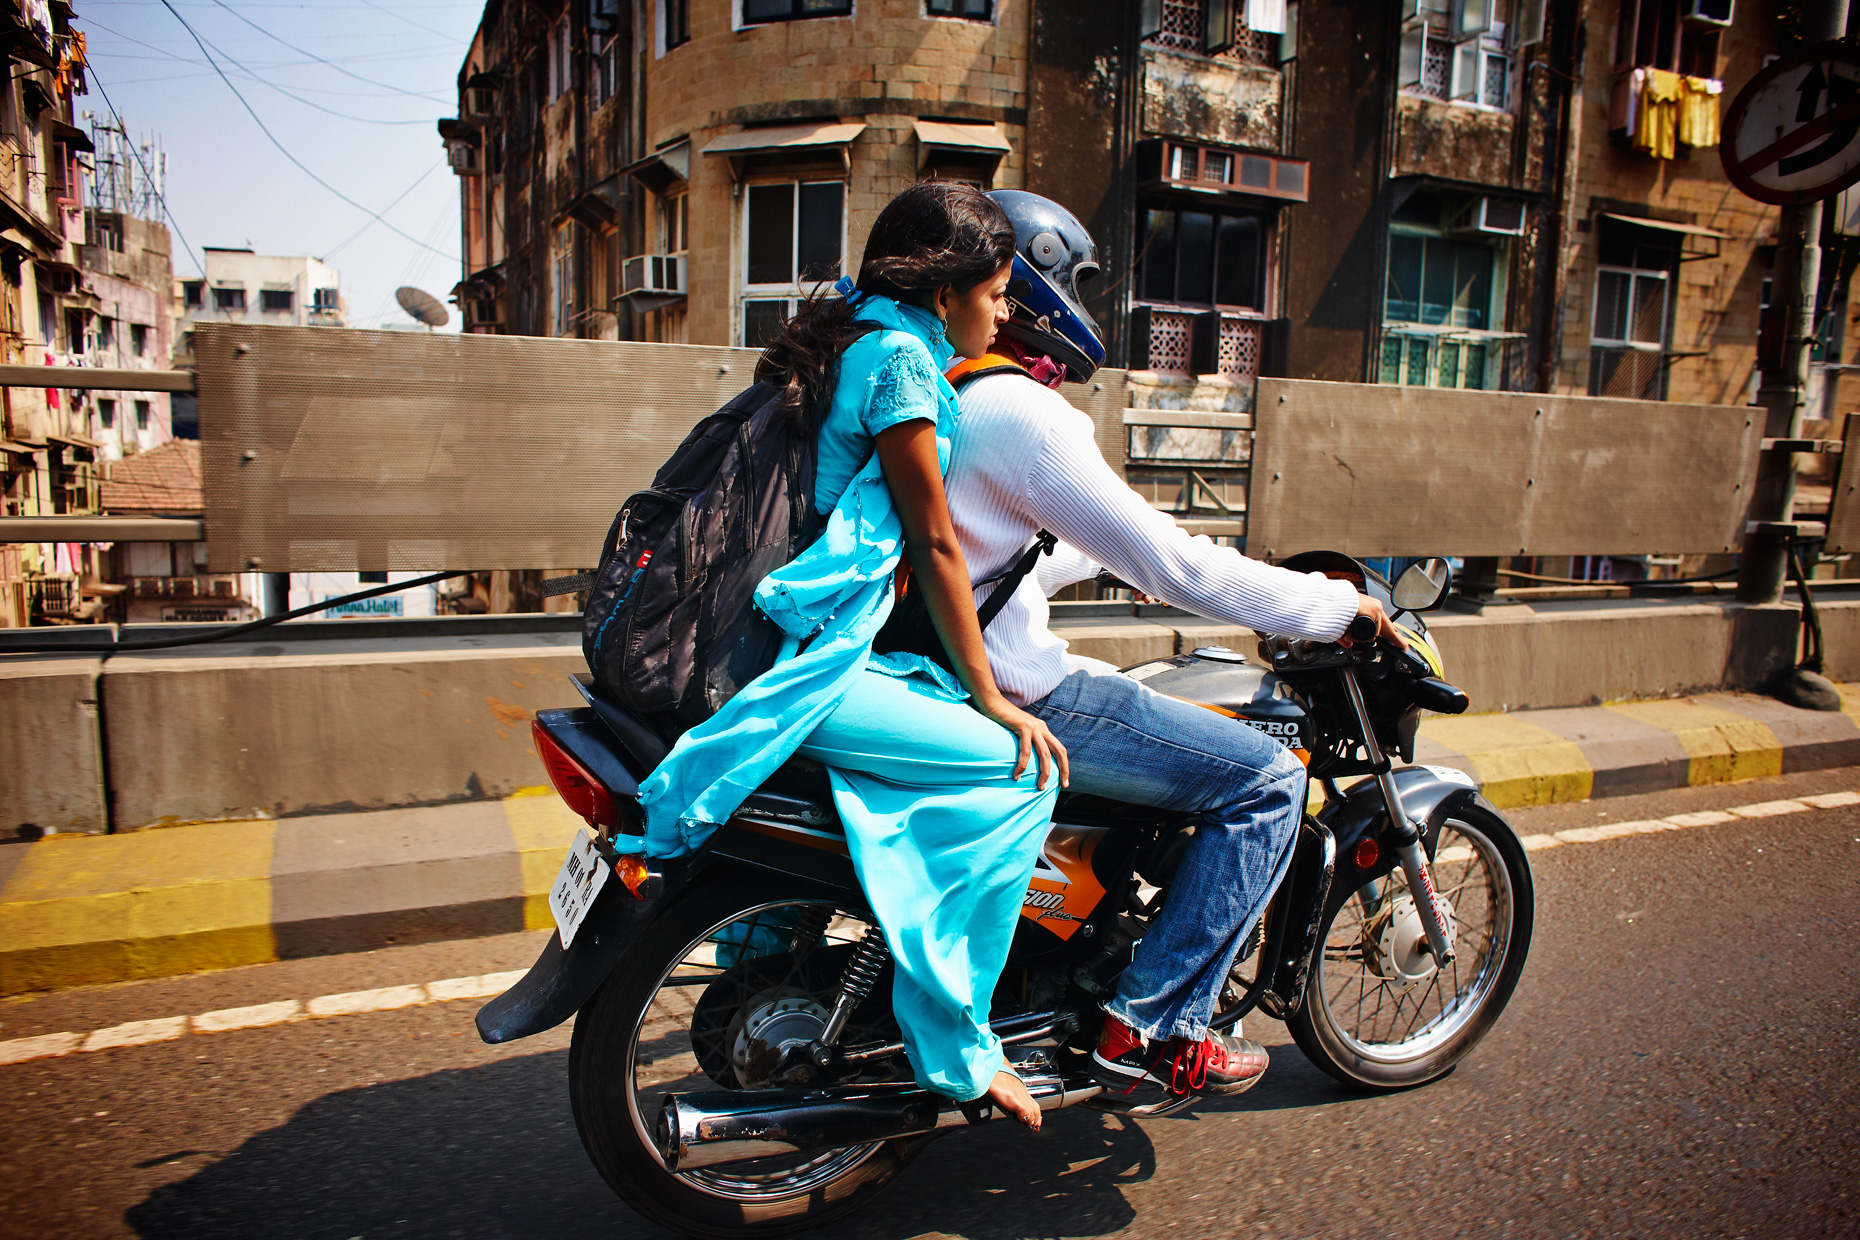 Motorcycle-Couple.jpg